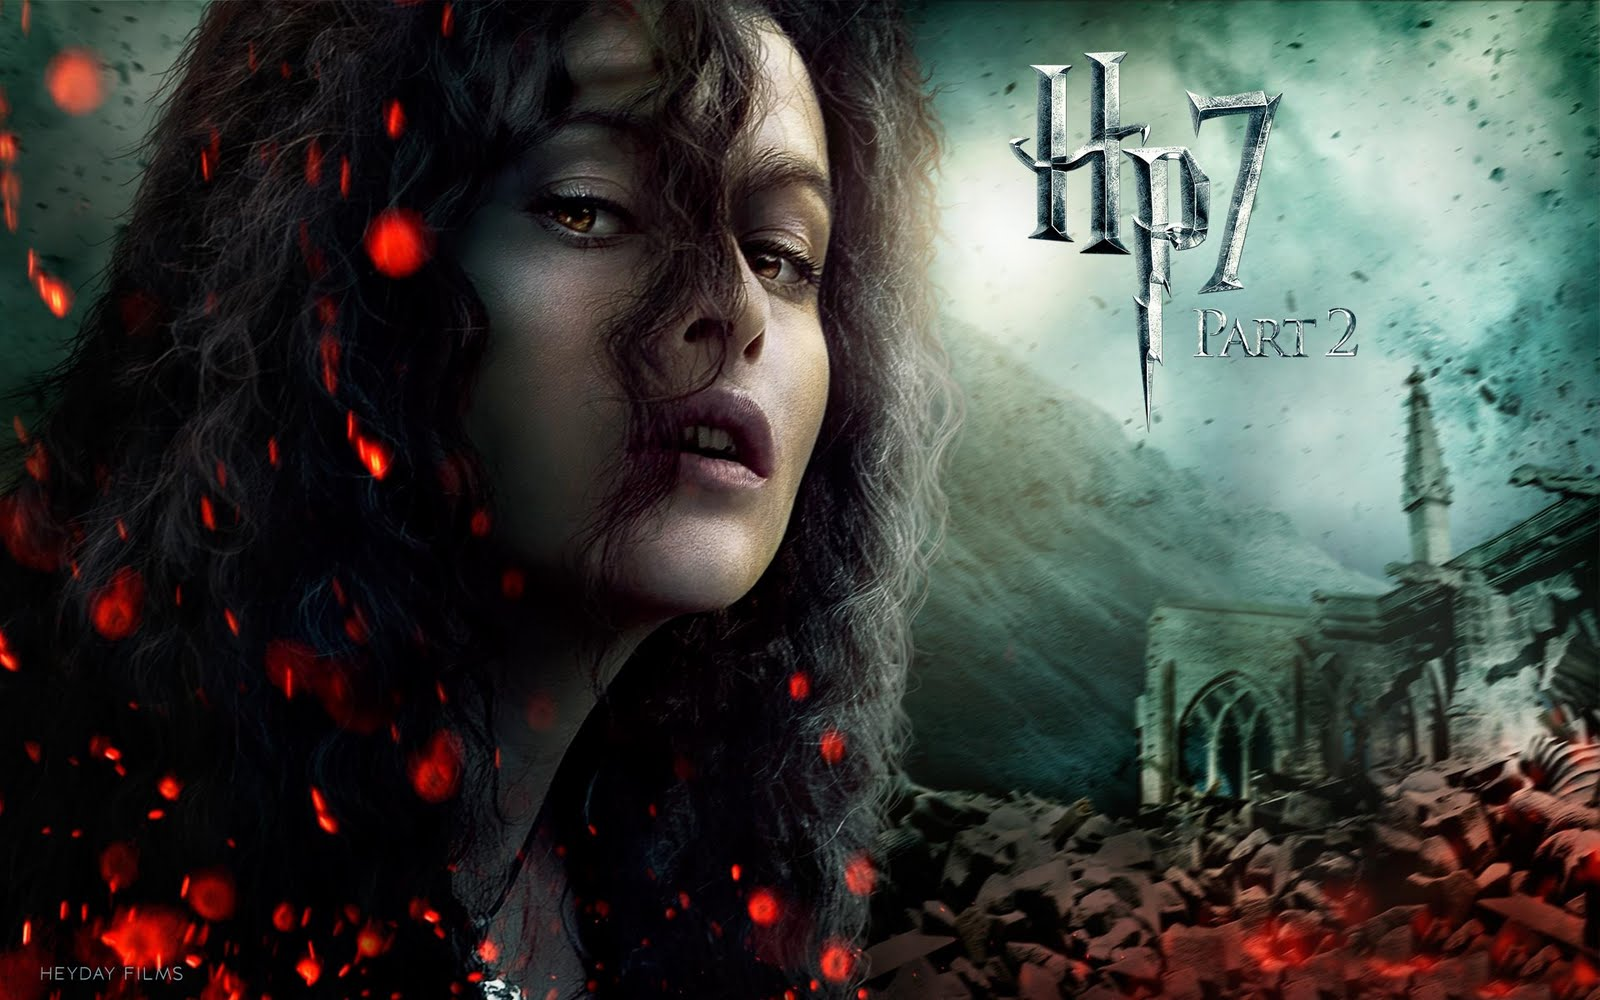 http://2.bp.blogspot.com/-6oz7Ry3-QlY/TieUKCp2hXI/AAAAAAAACFc/lXxhc2AV6e0/s1600/harry_potter_and_the_deathly_hallows_part_2_bellatrix-wallpaper-1920x1200.jpg